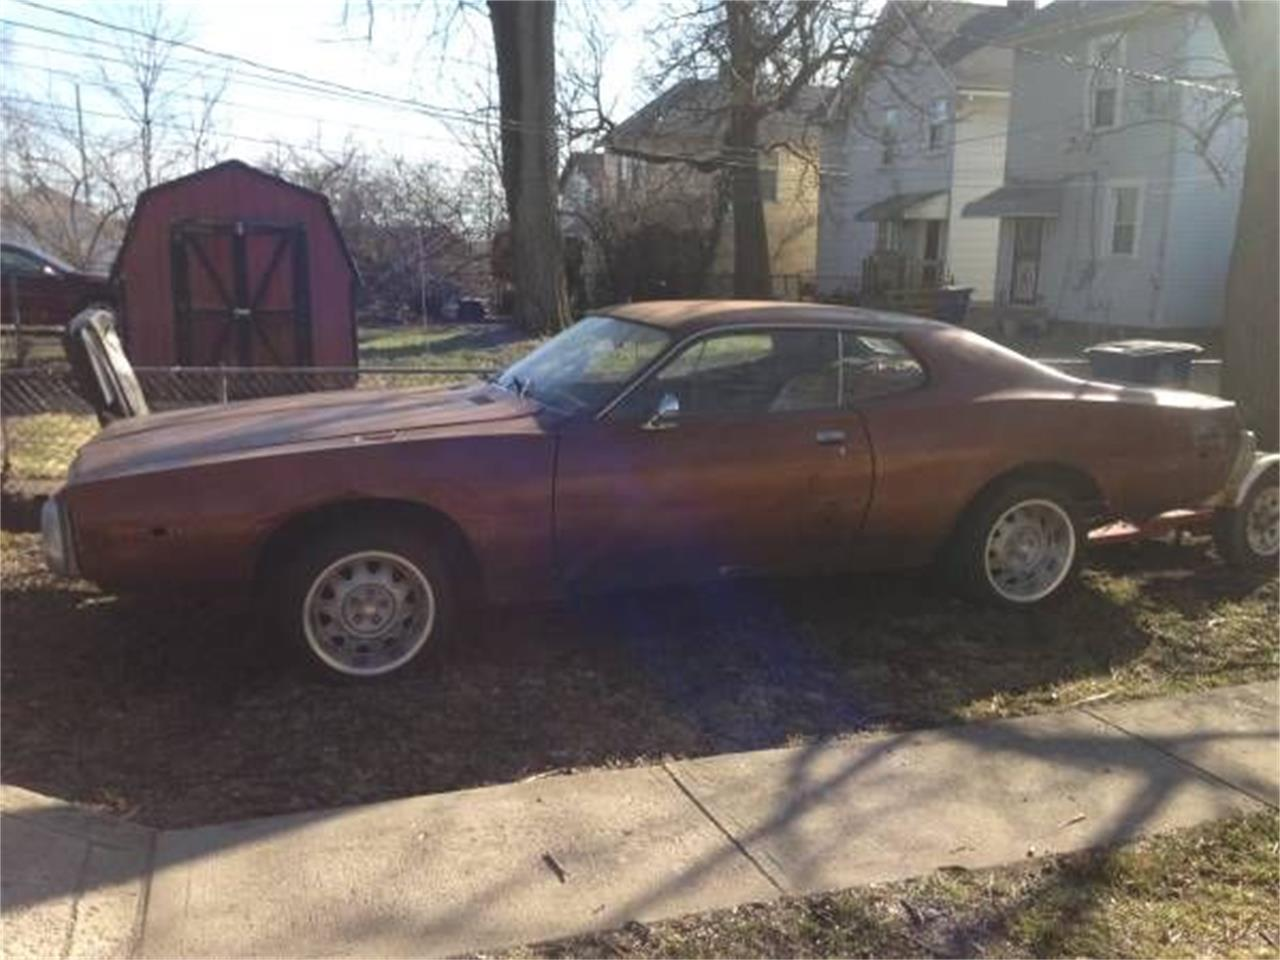 for sale 1973 dodge charger in cadillac, michigan cars - cadillac, mi at geebo